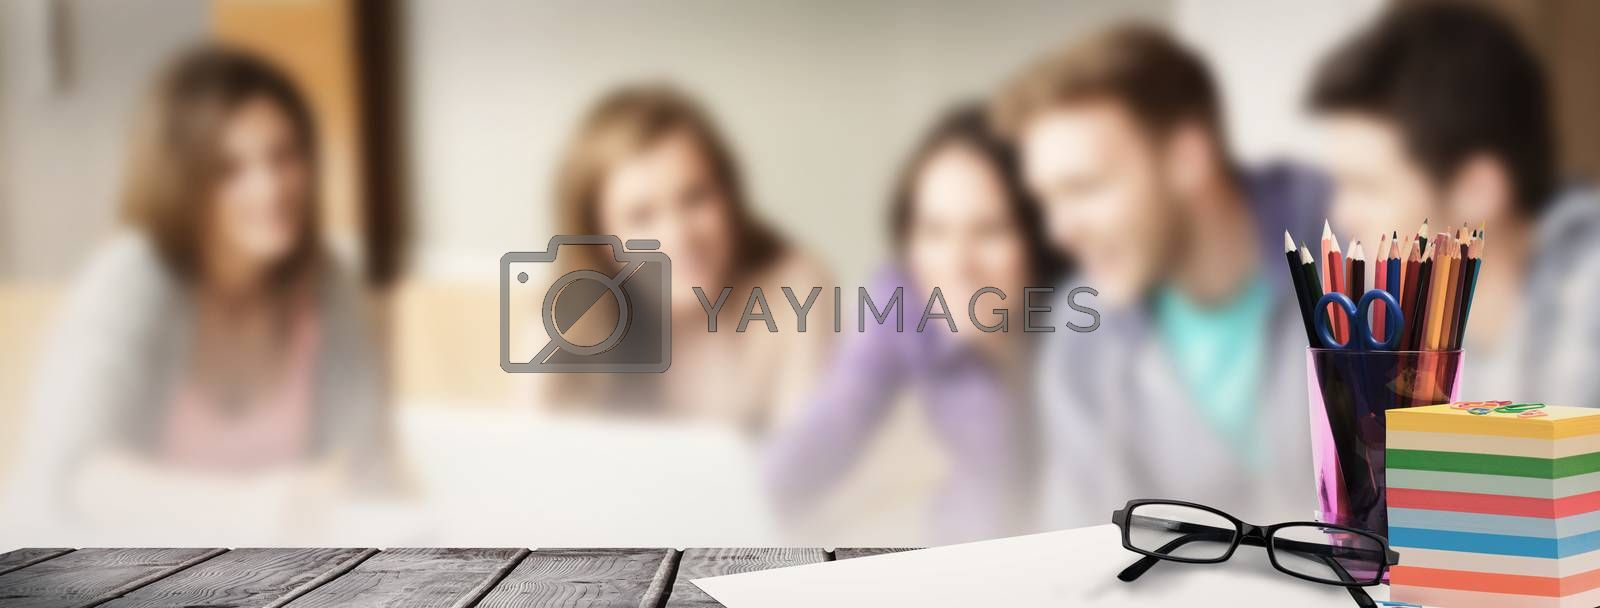 School supplies on desk against smiling friends students using laptop